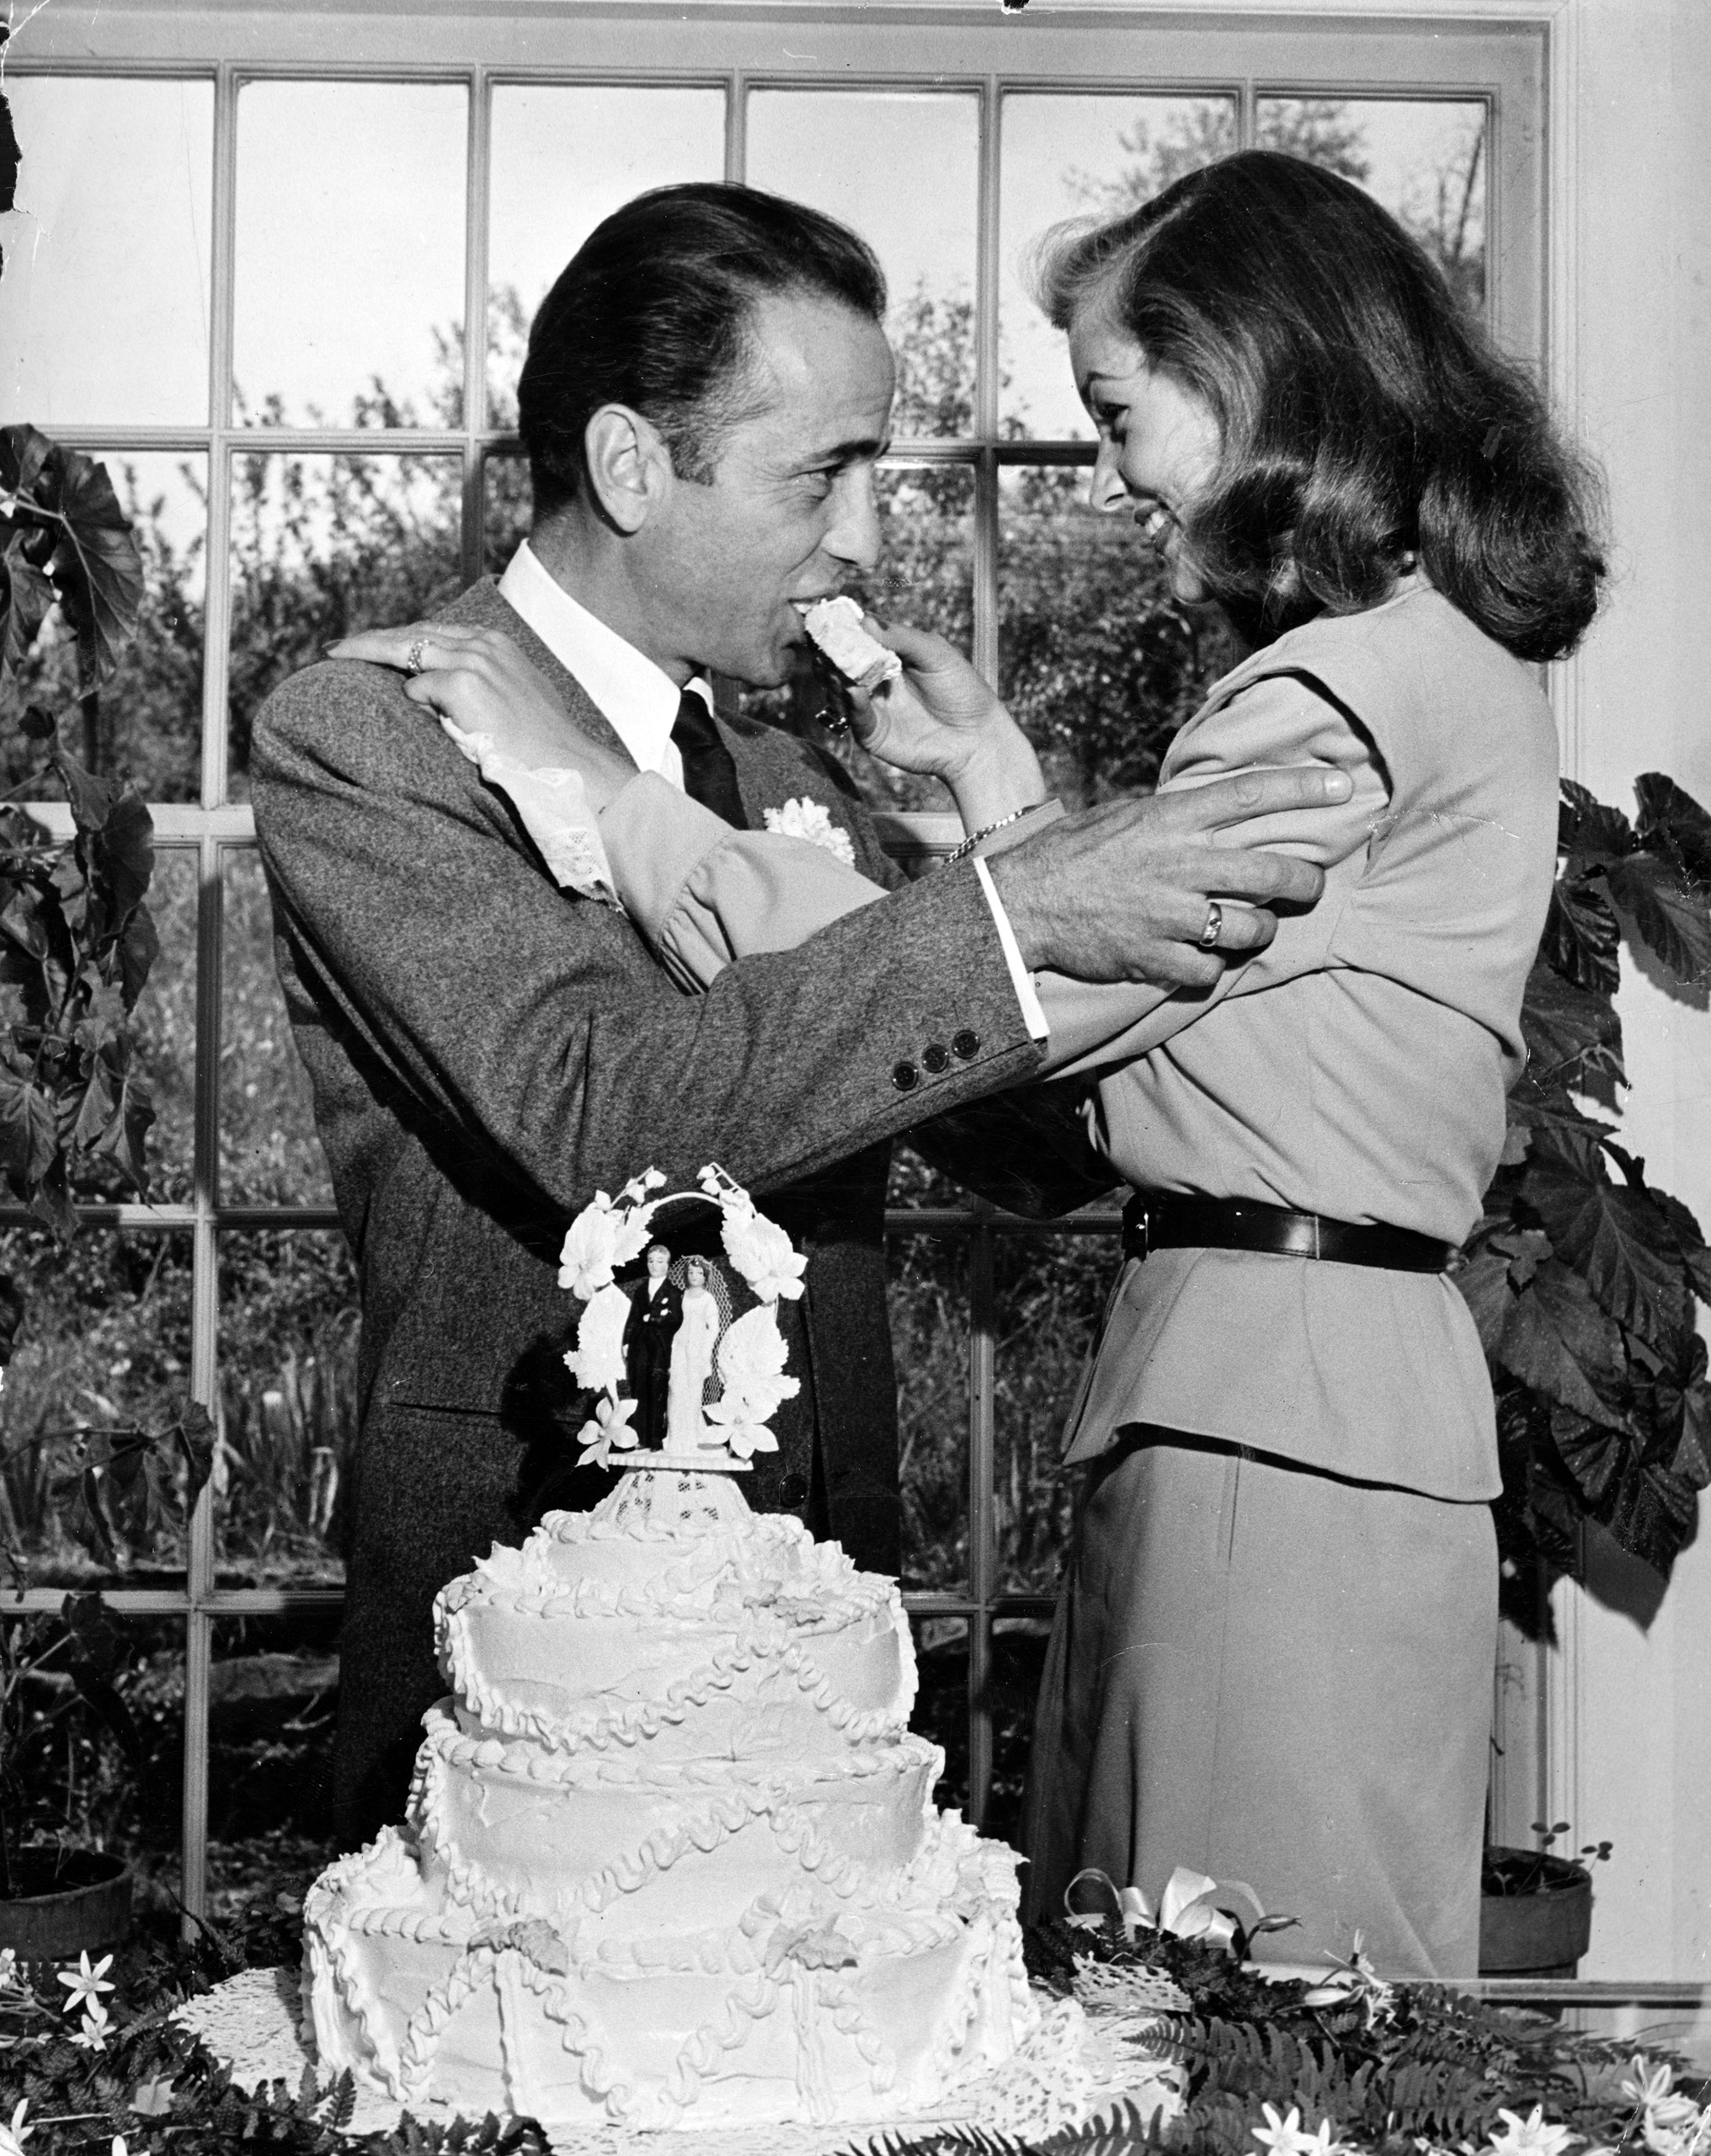 <b>Caption from LIFE.</b> Lauren Bacall feeds wedding cake to her tough-guy groom, Humphrey Bogart, after their marriage ceremony in Ohio.